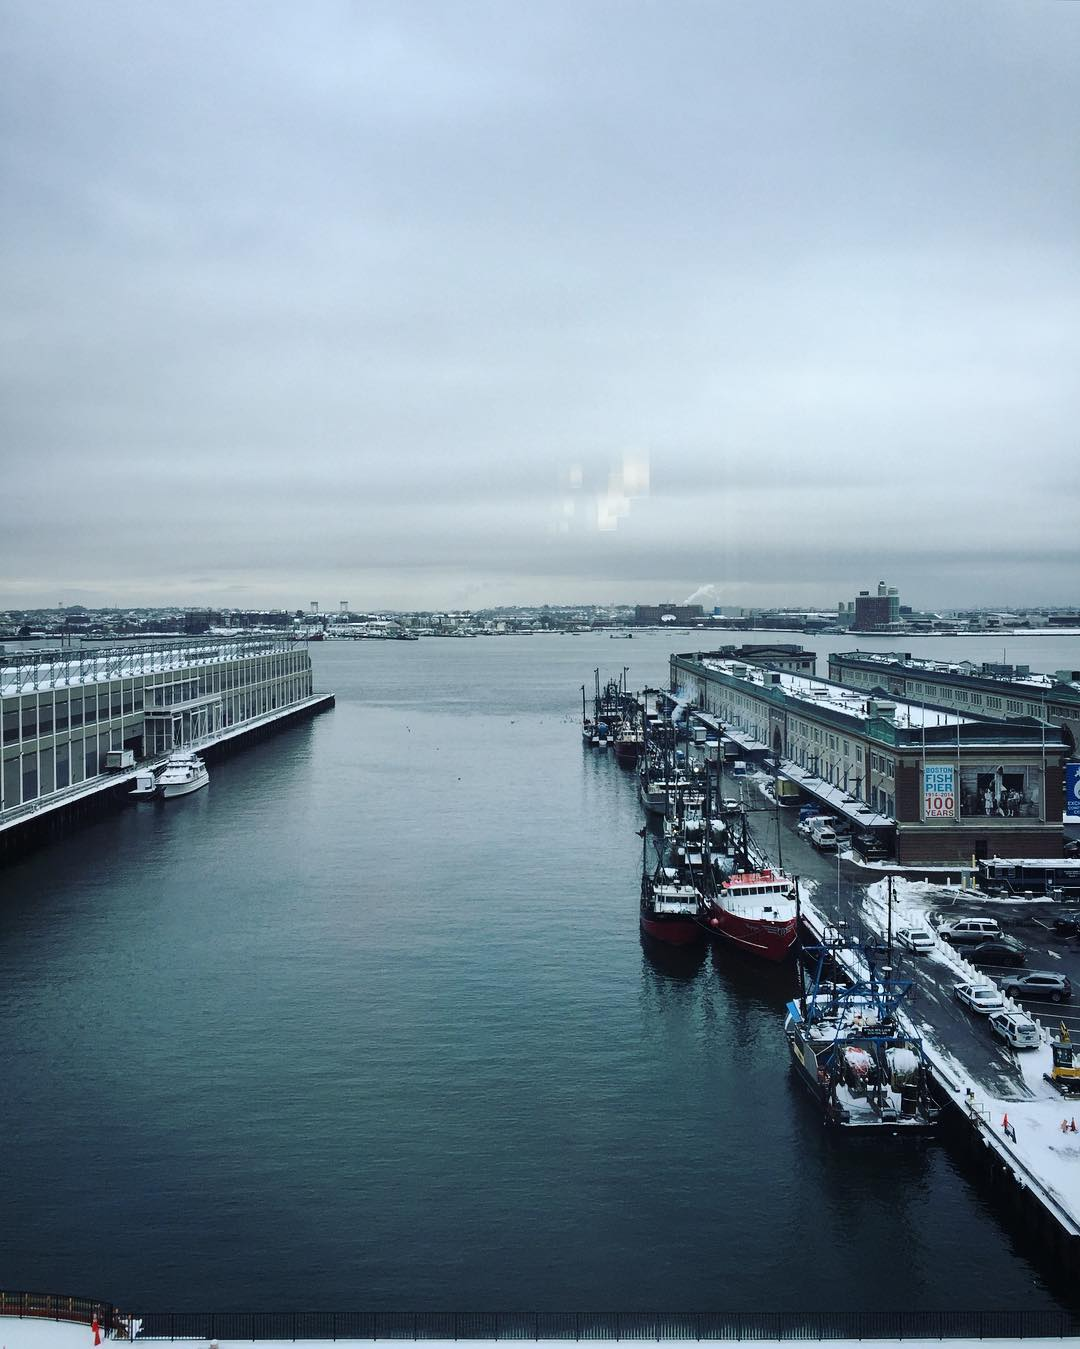 Winter at the Seaport